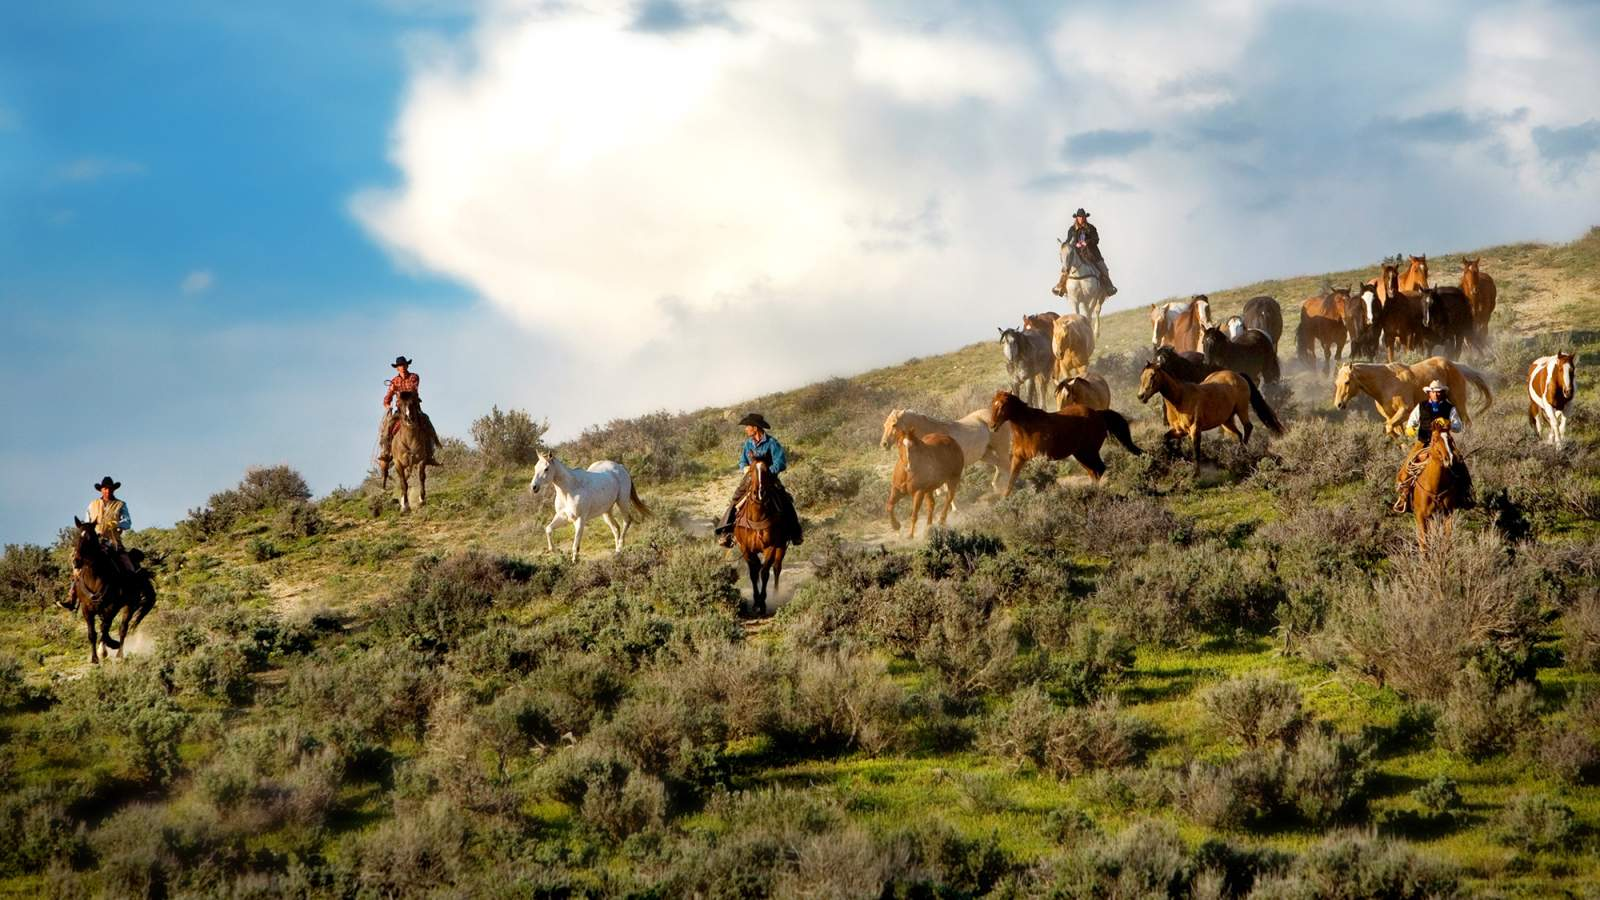 Sheraton Steamboat Resort Villas - Horseback Riding